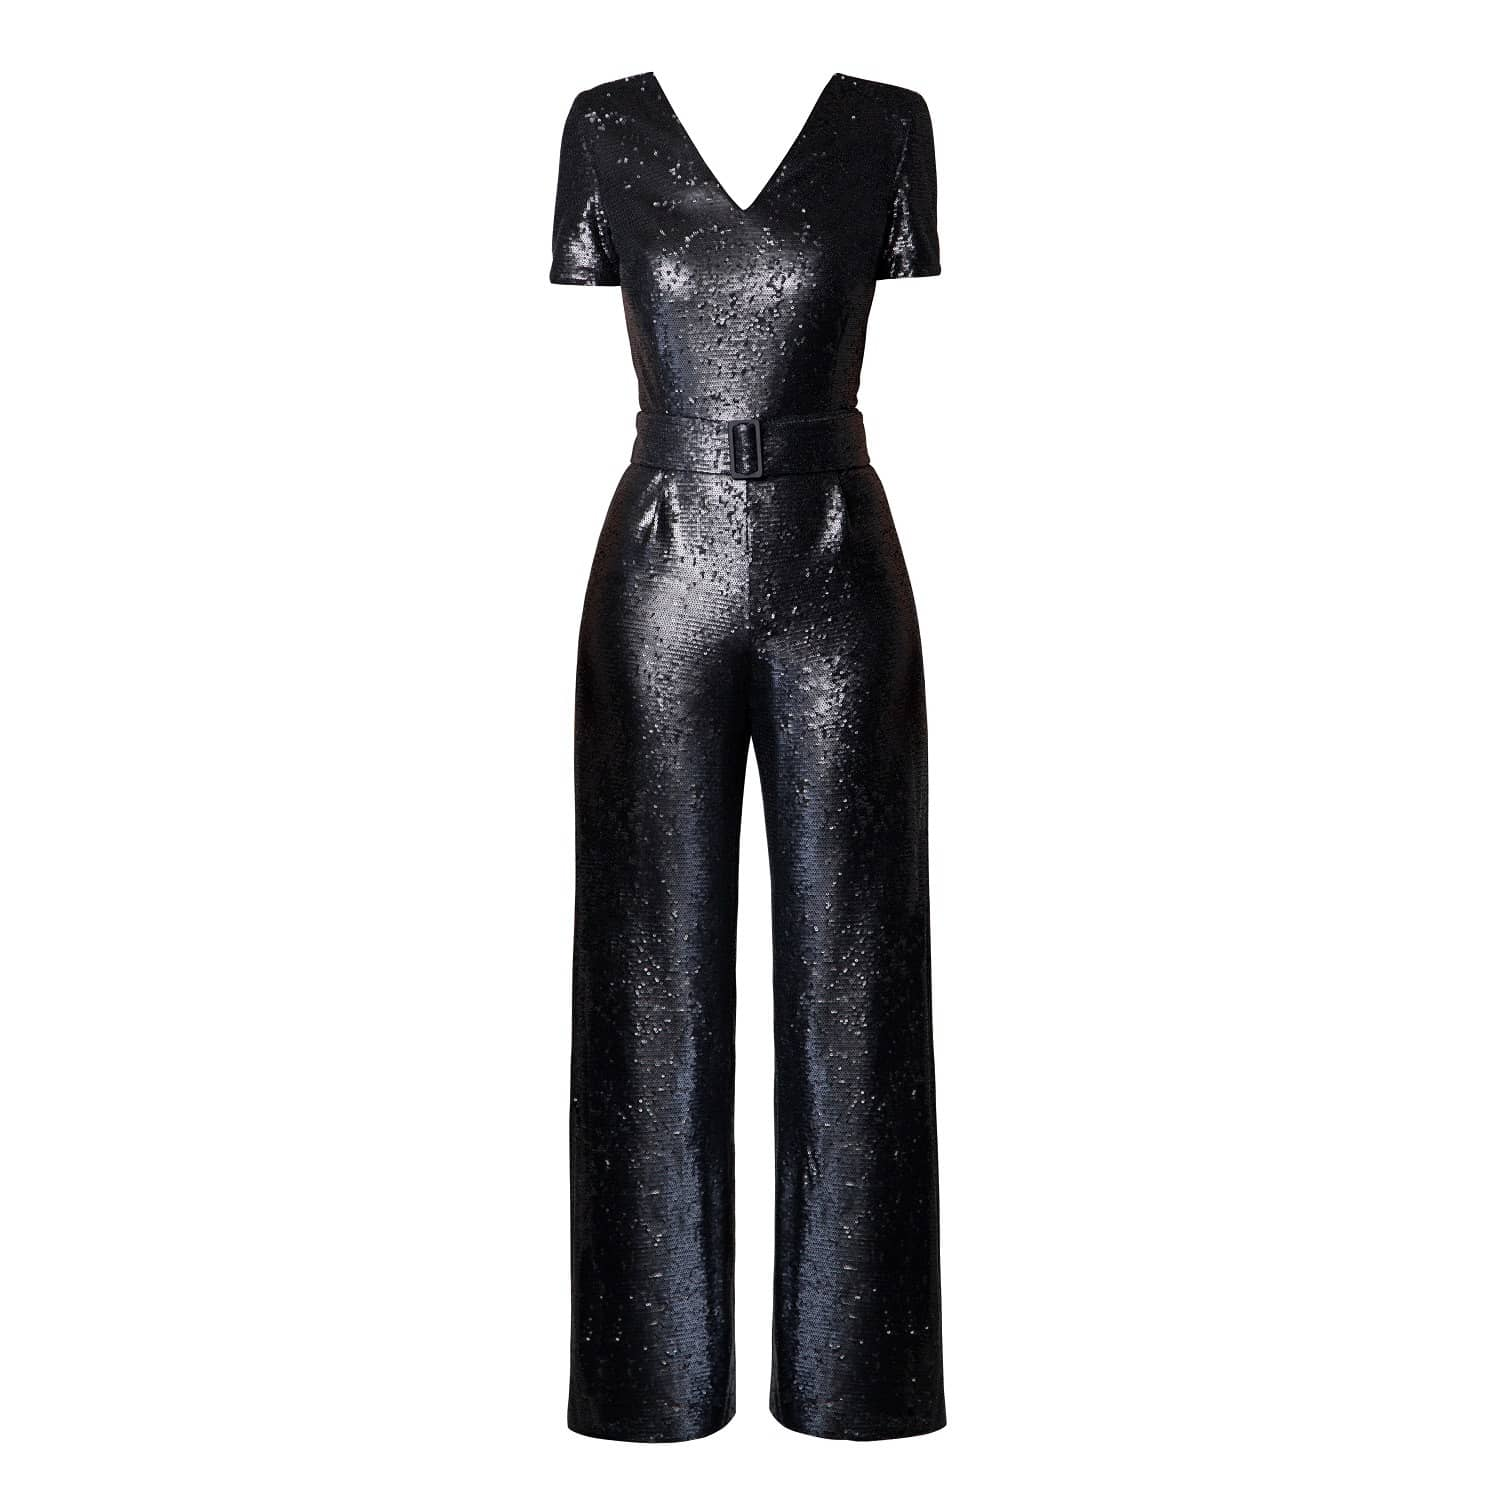 find lowest price good looking Super discount Naomi Black Sequin Jumpsuit With V-Shaped Back by Rumour London